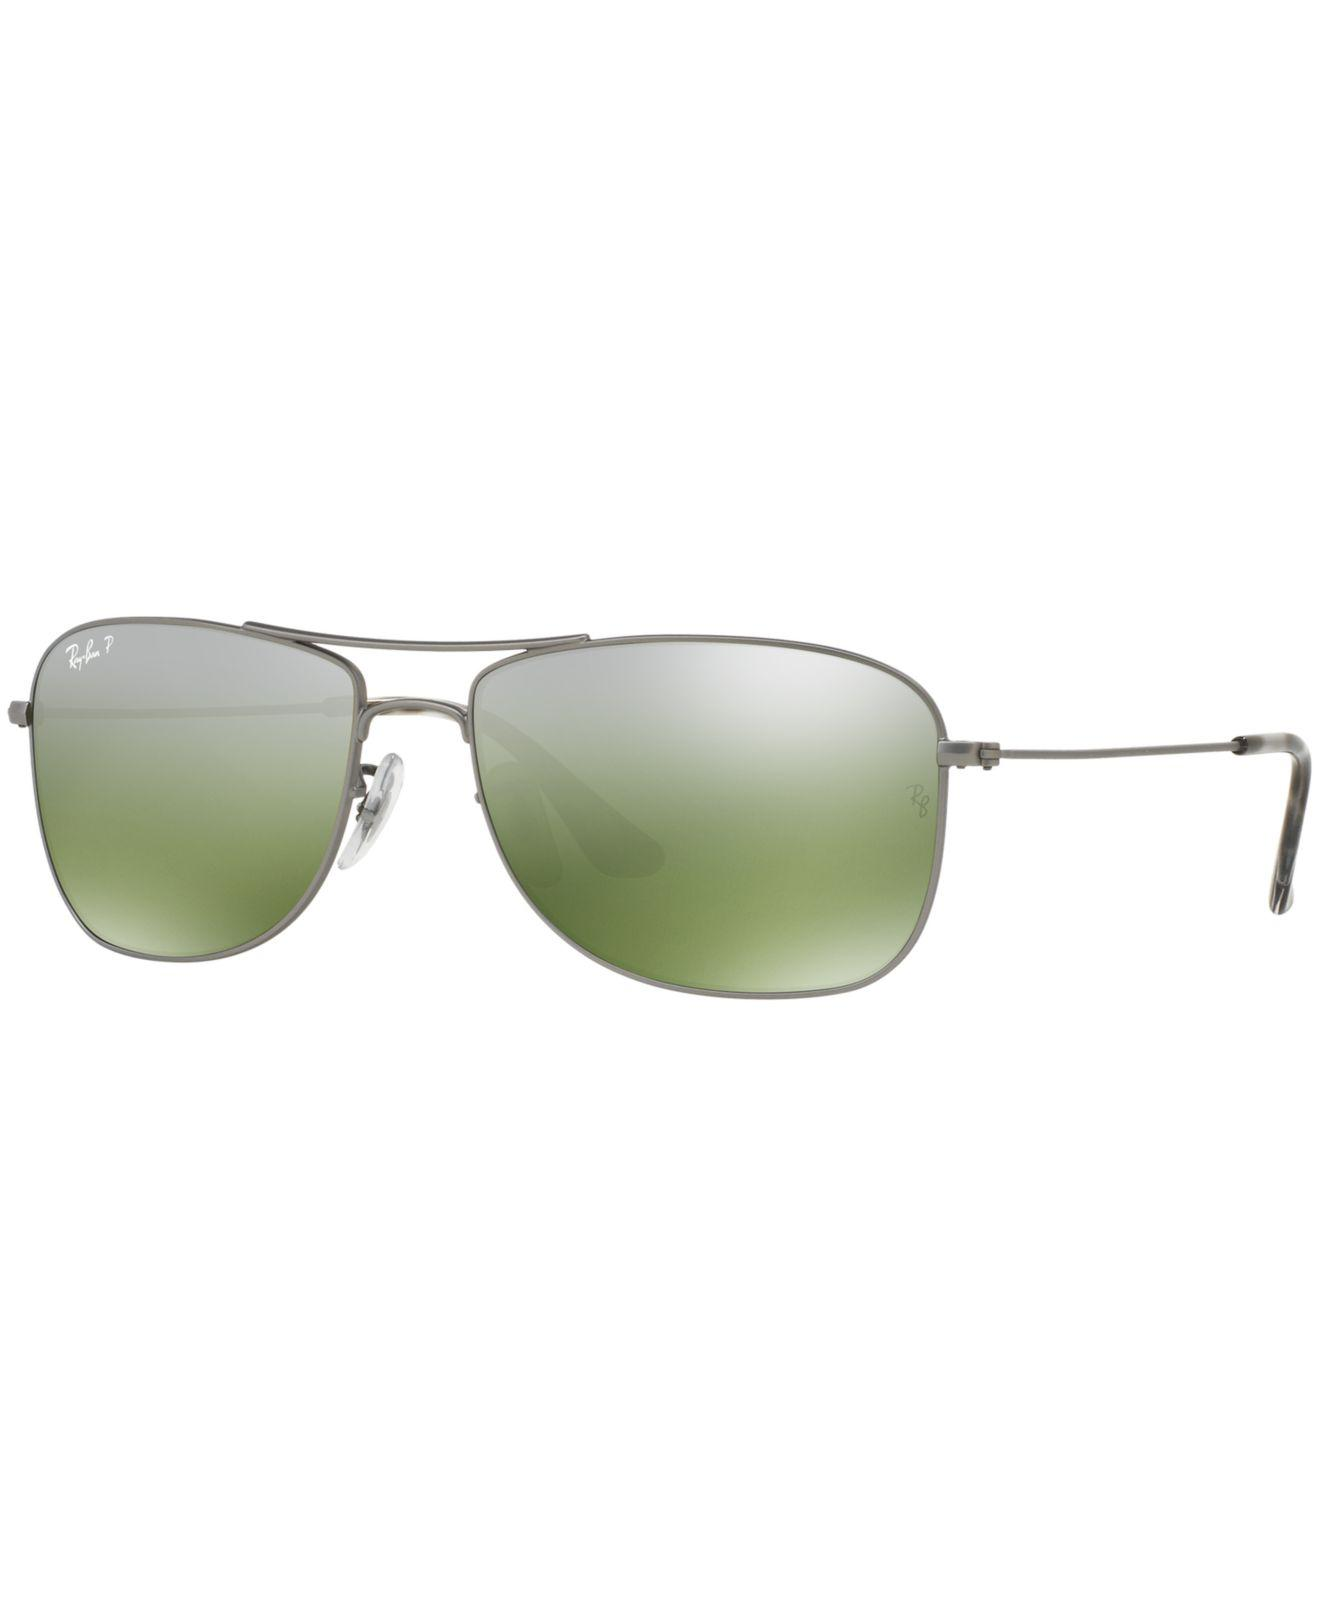 a57c66d827265 ... amazon lyst ray ban sunglasses rb3543 59 chromance collection in  metallic d71a4 79d8d